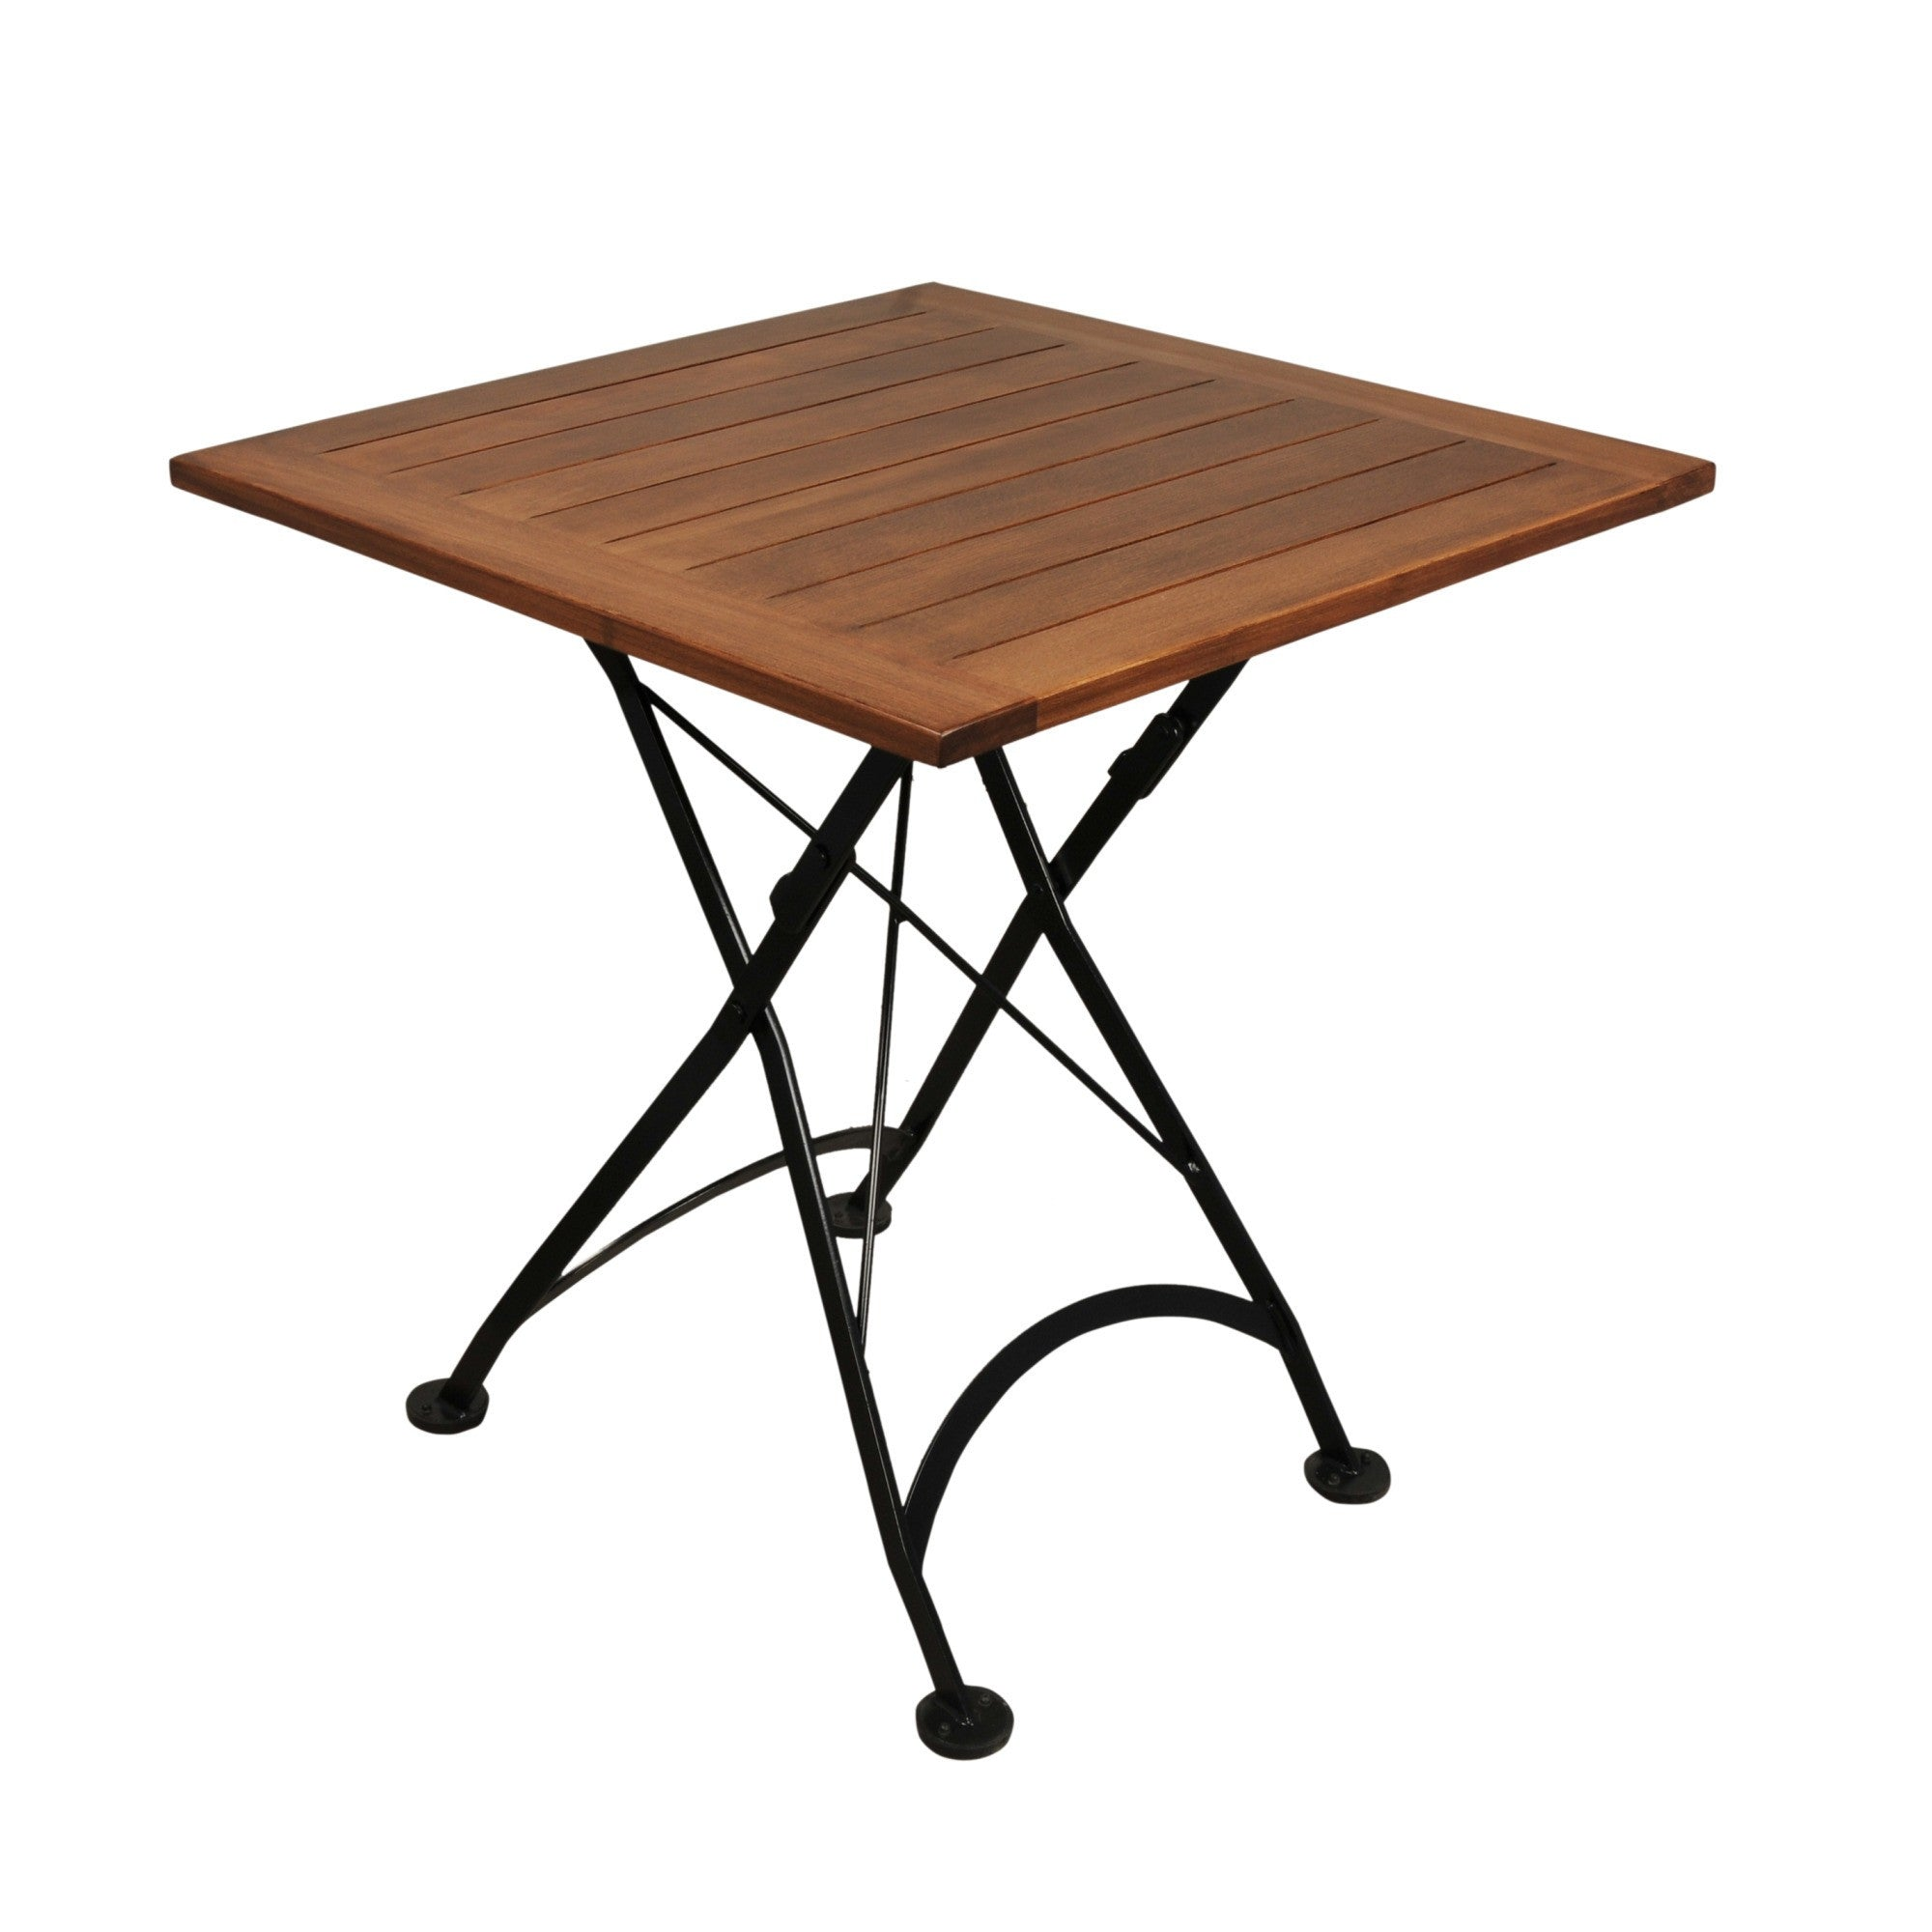 Square folding tables - 28 Inch Square European Folding Chestnut Wood Table